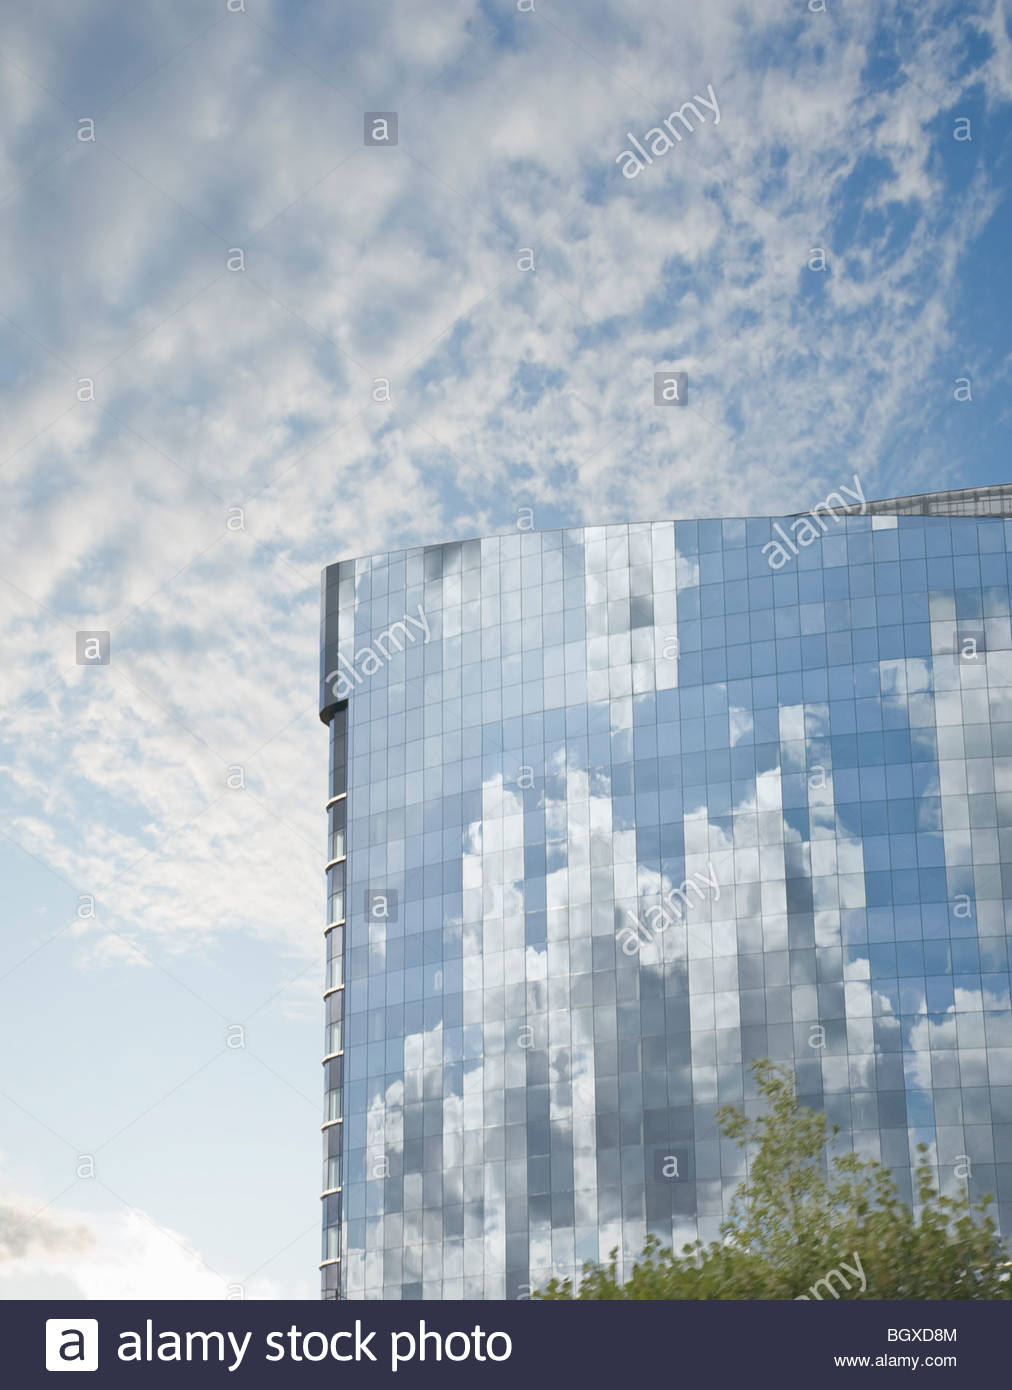 Clouds reflected in building - Stock Image